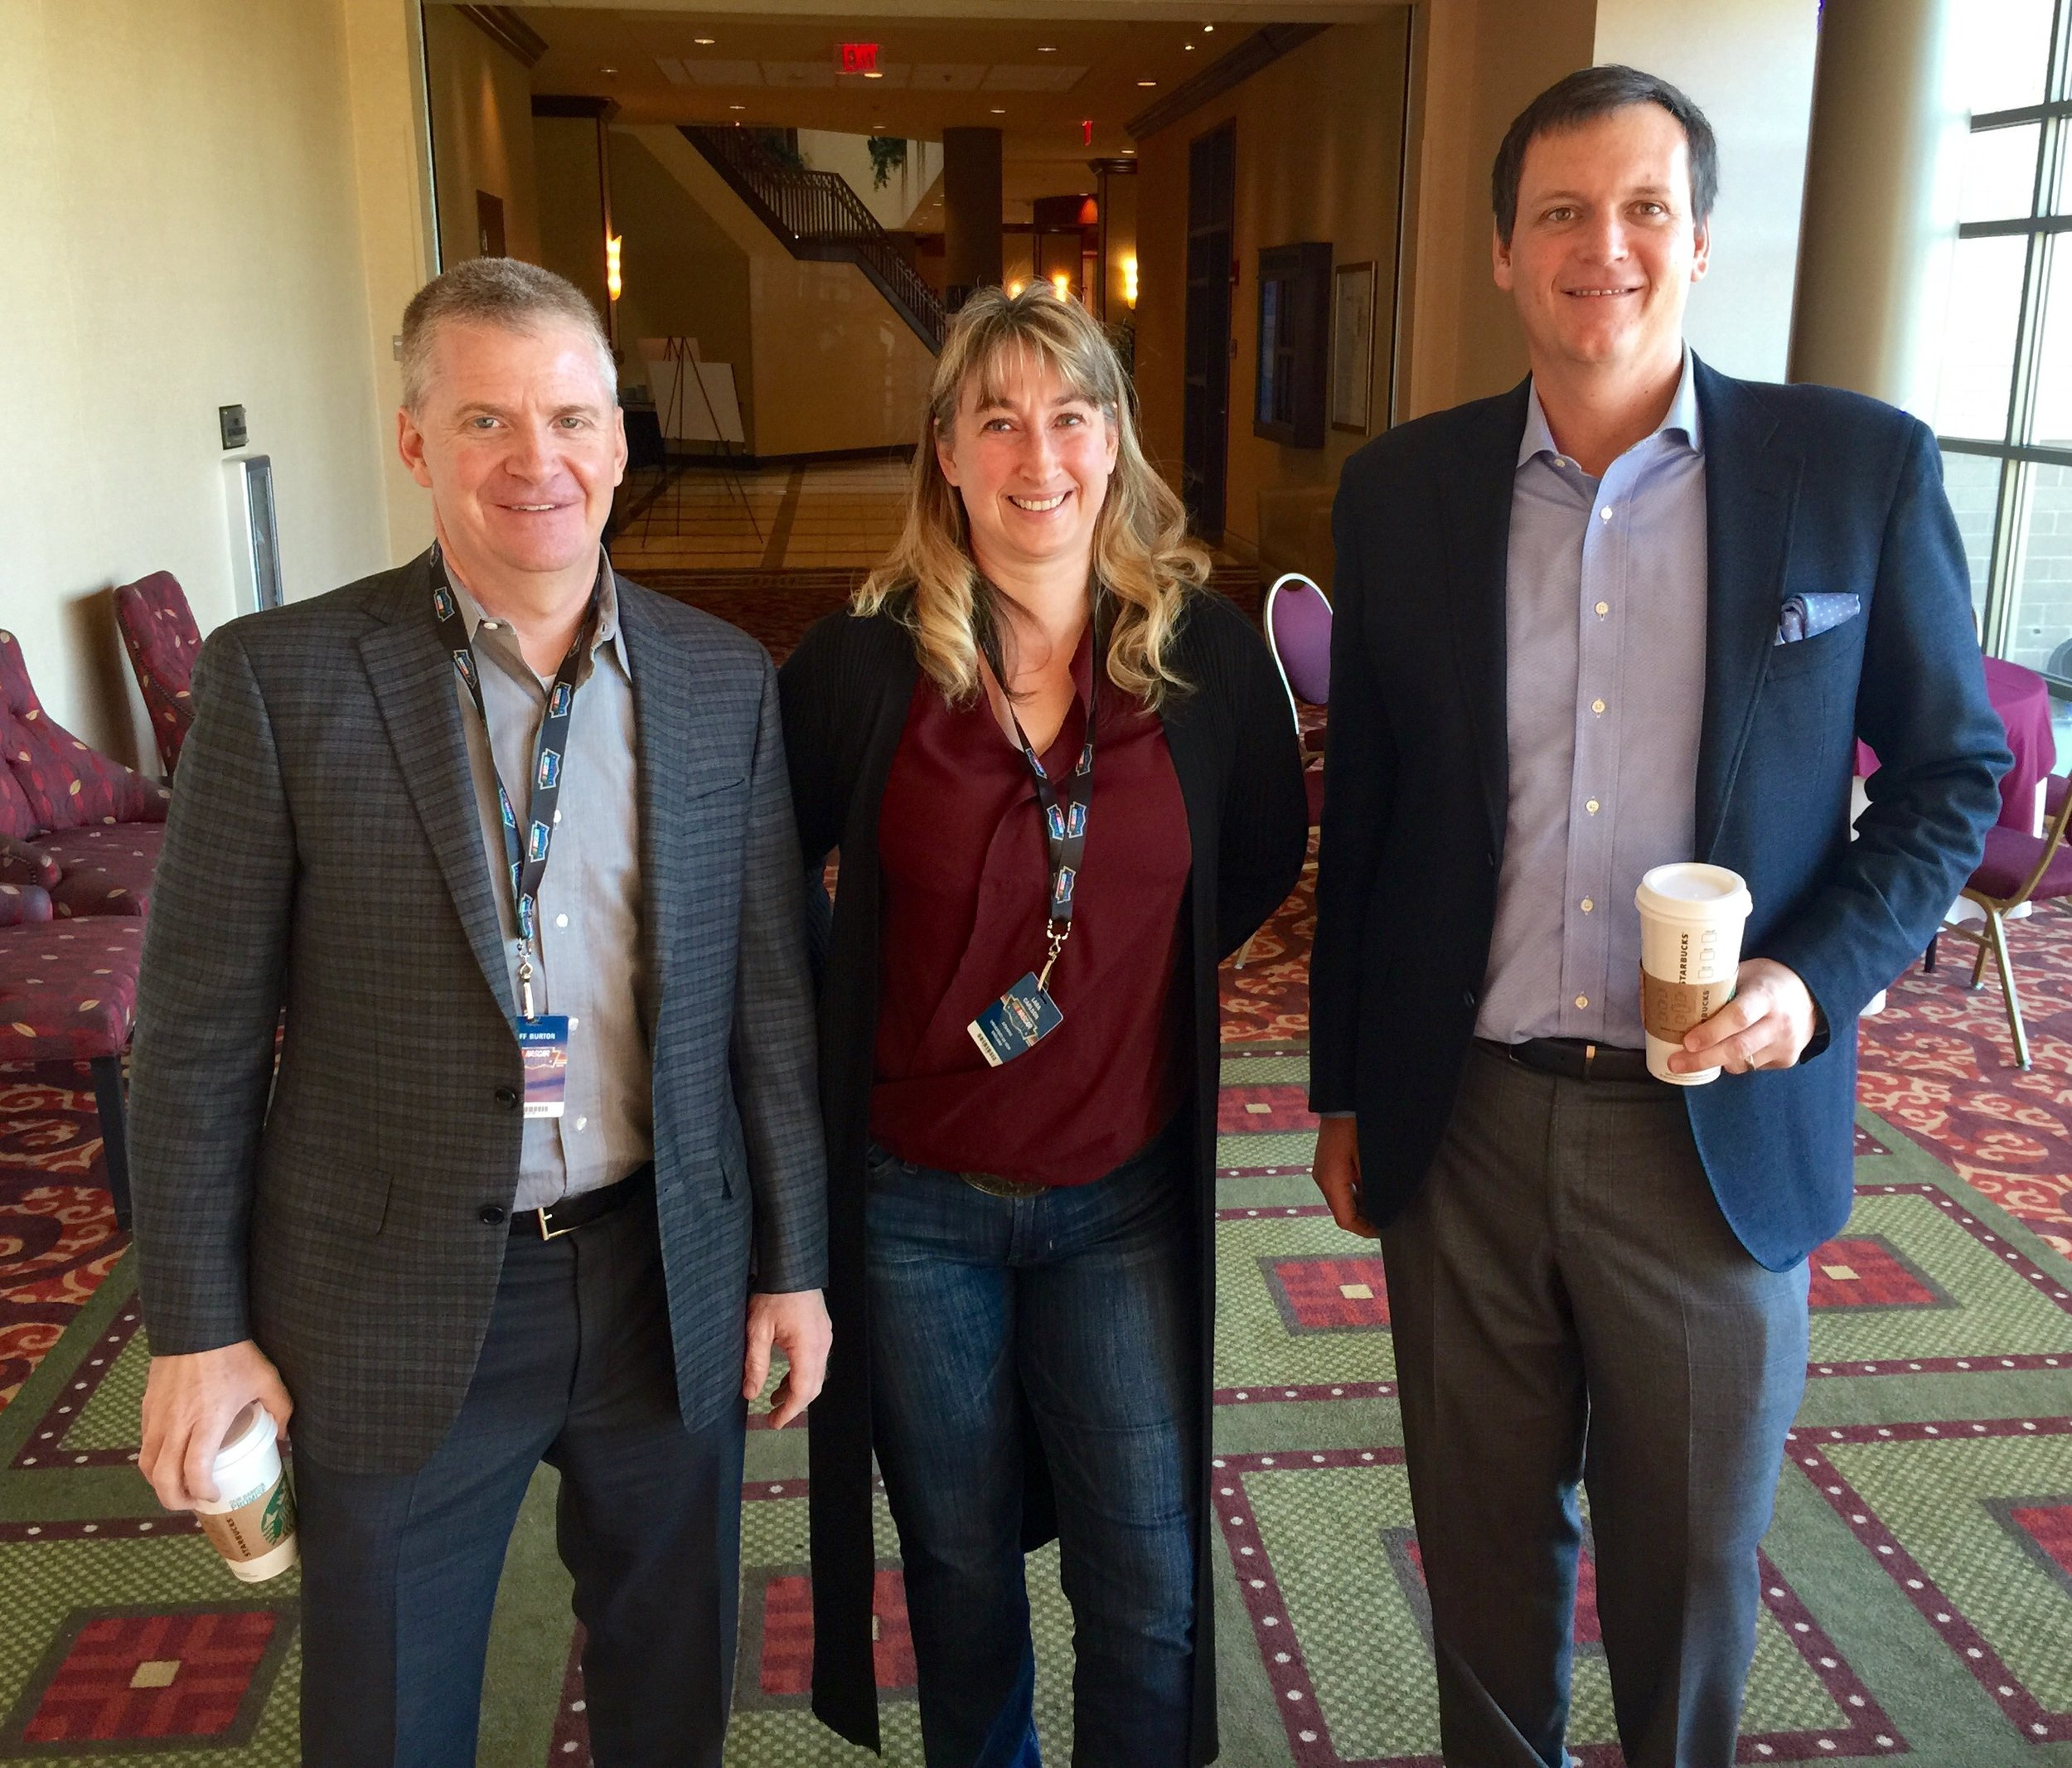 Running into NASCAR Driver Jeff Burton and NASCAR Crew Chief (and Mainer) Steve LeTarte while waiting to present at the NASCAR Summit.